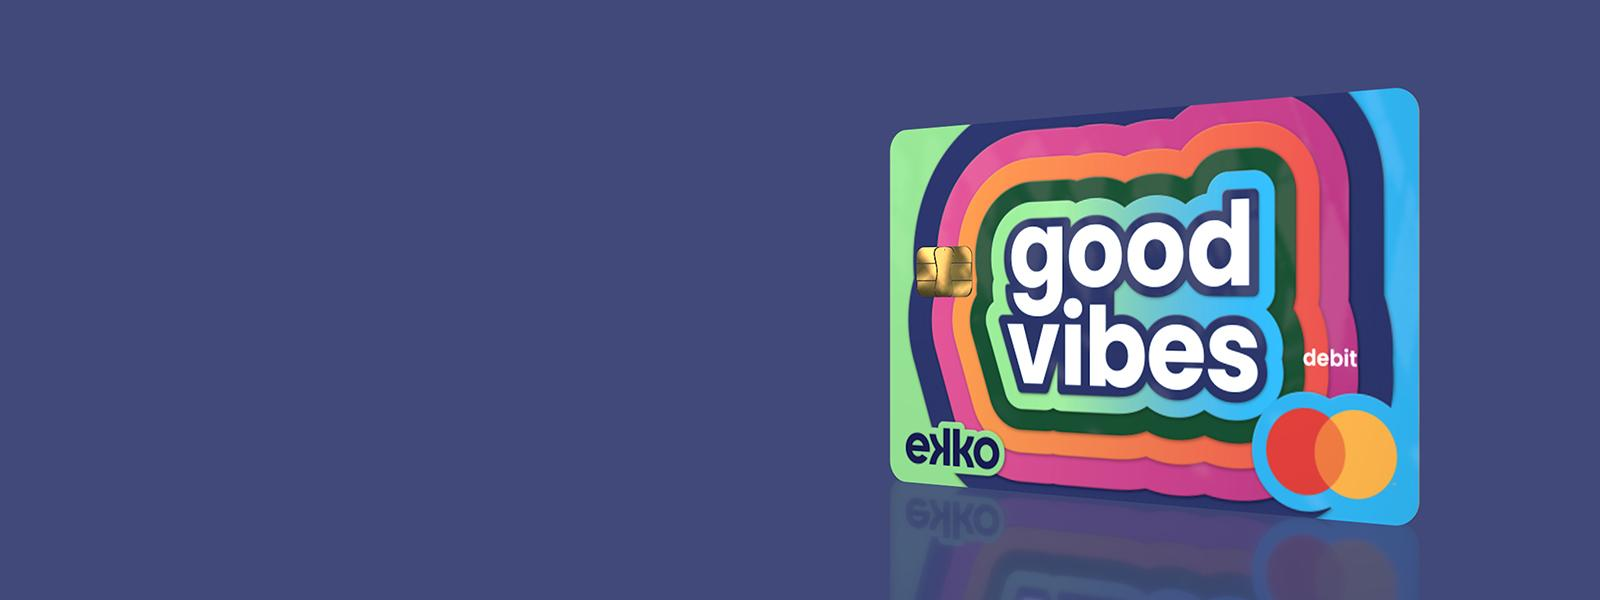 ekko's good vibes debit card made from recycled PVC